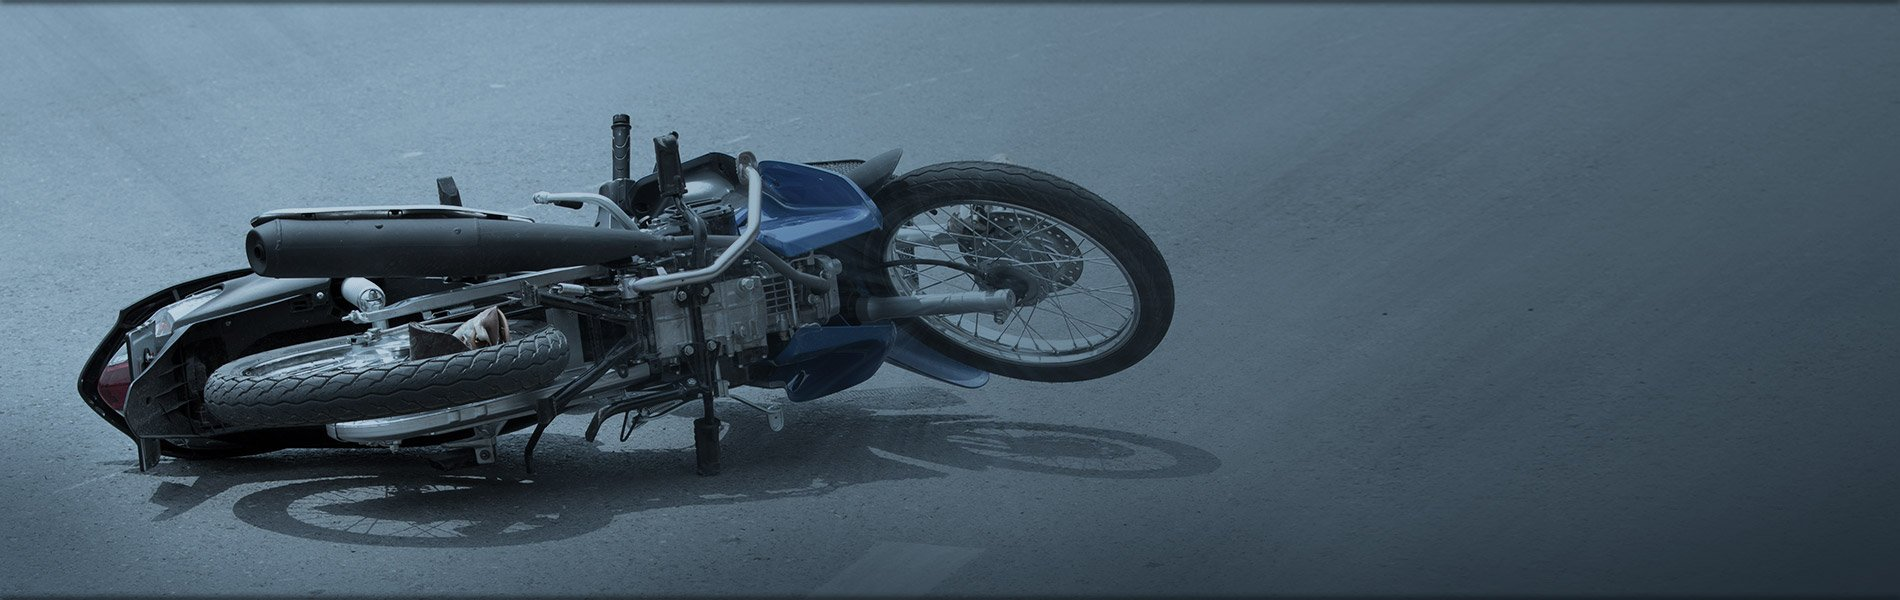 Motorcycle Accident Attorneys Gainesville